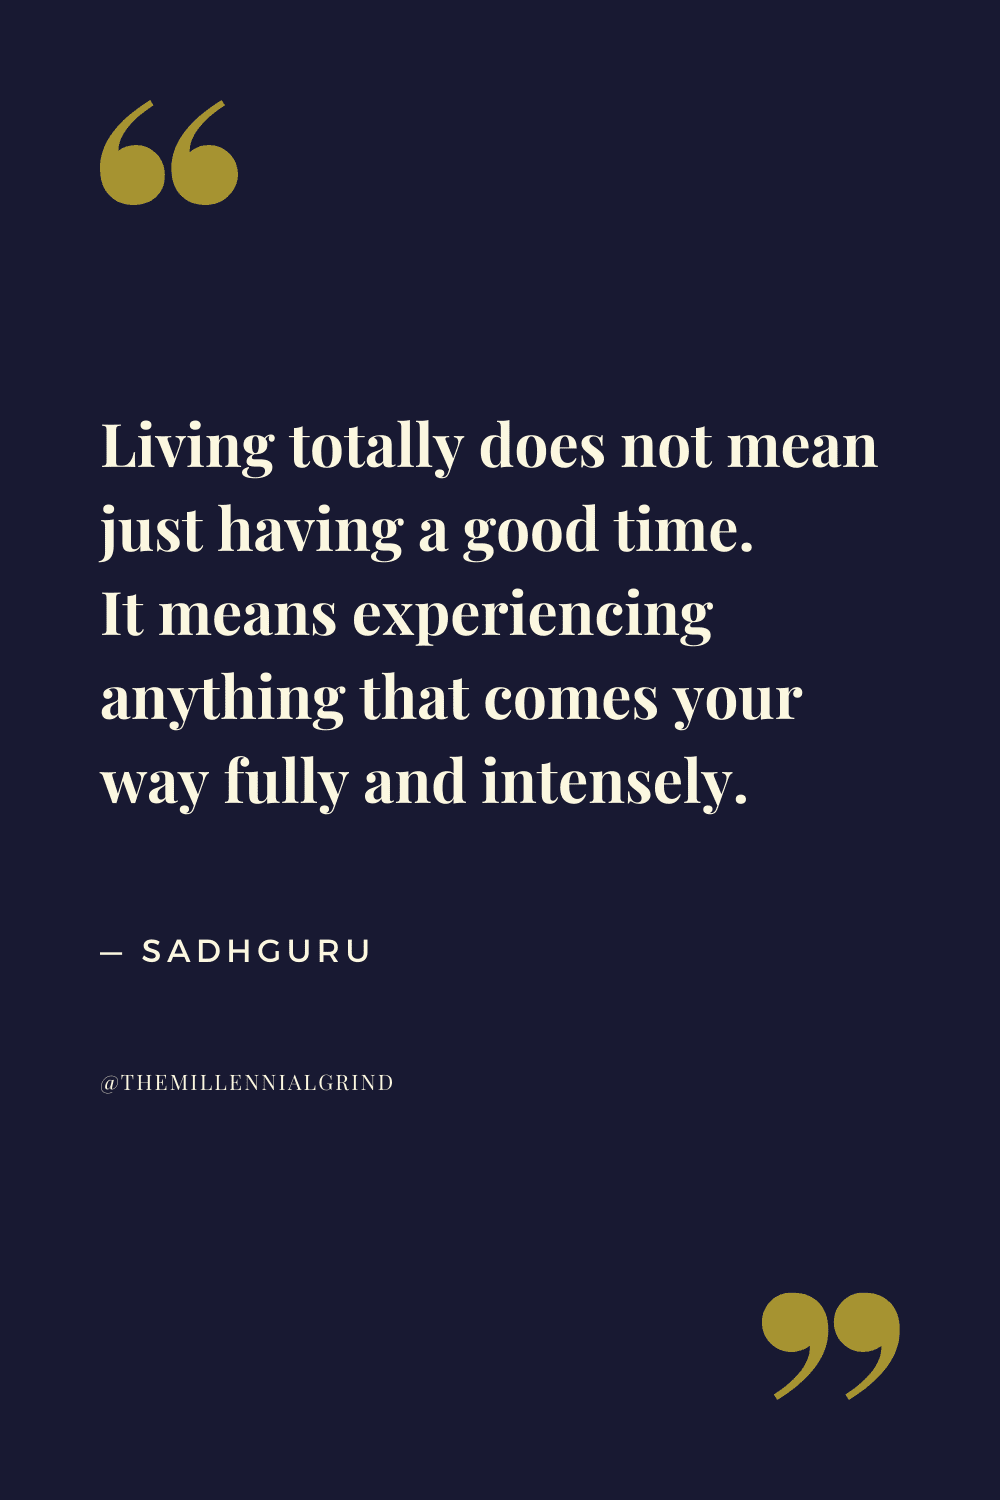 Living totally does not mean just having a good time. It means experiencing anything that comes your way fully and intensely.